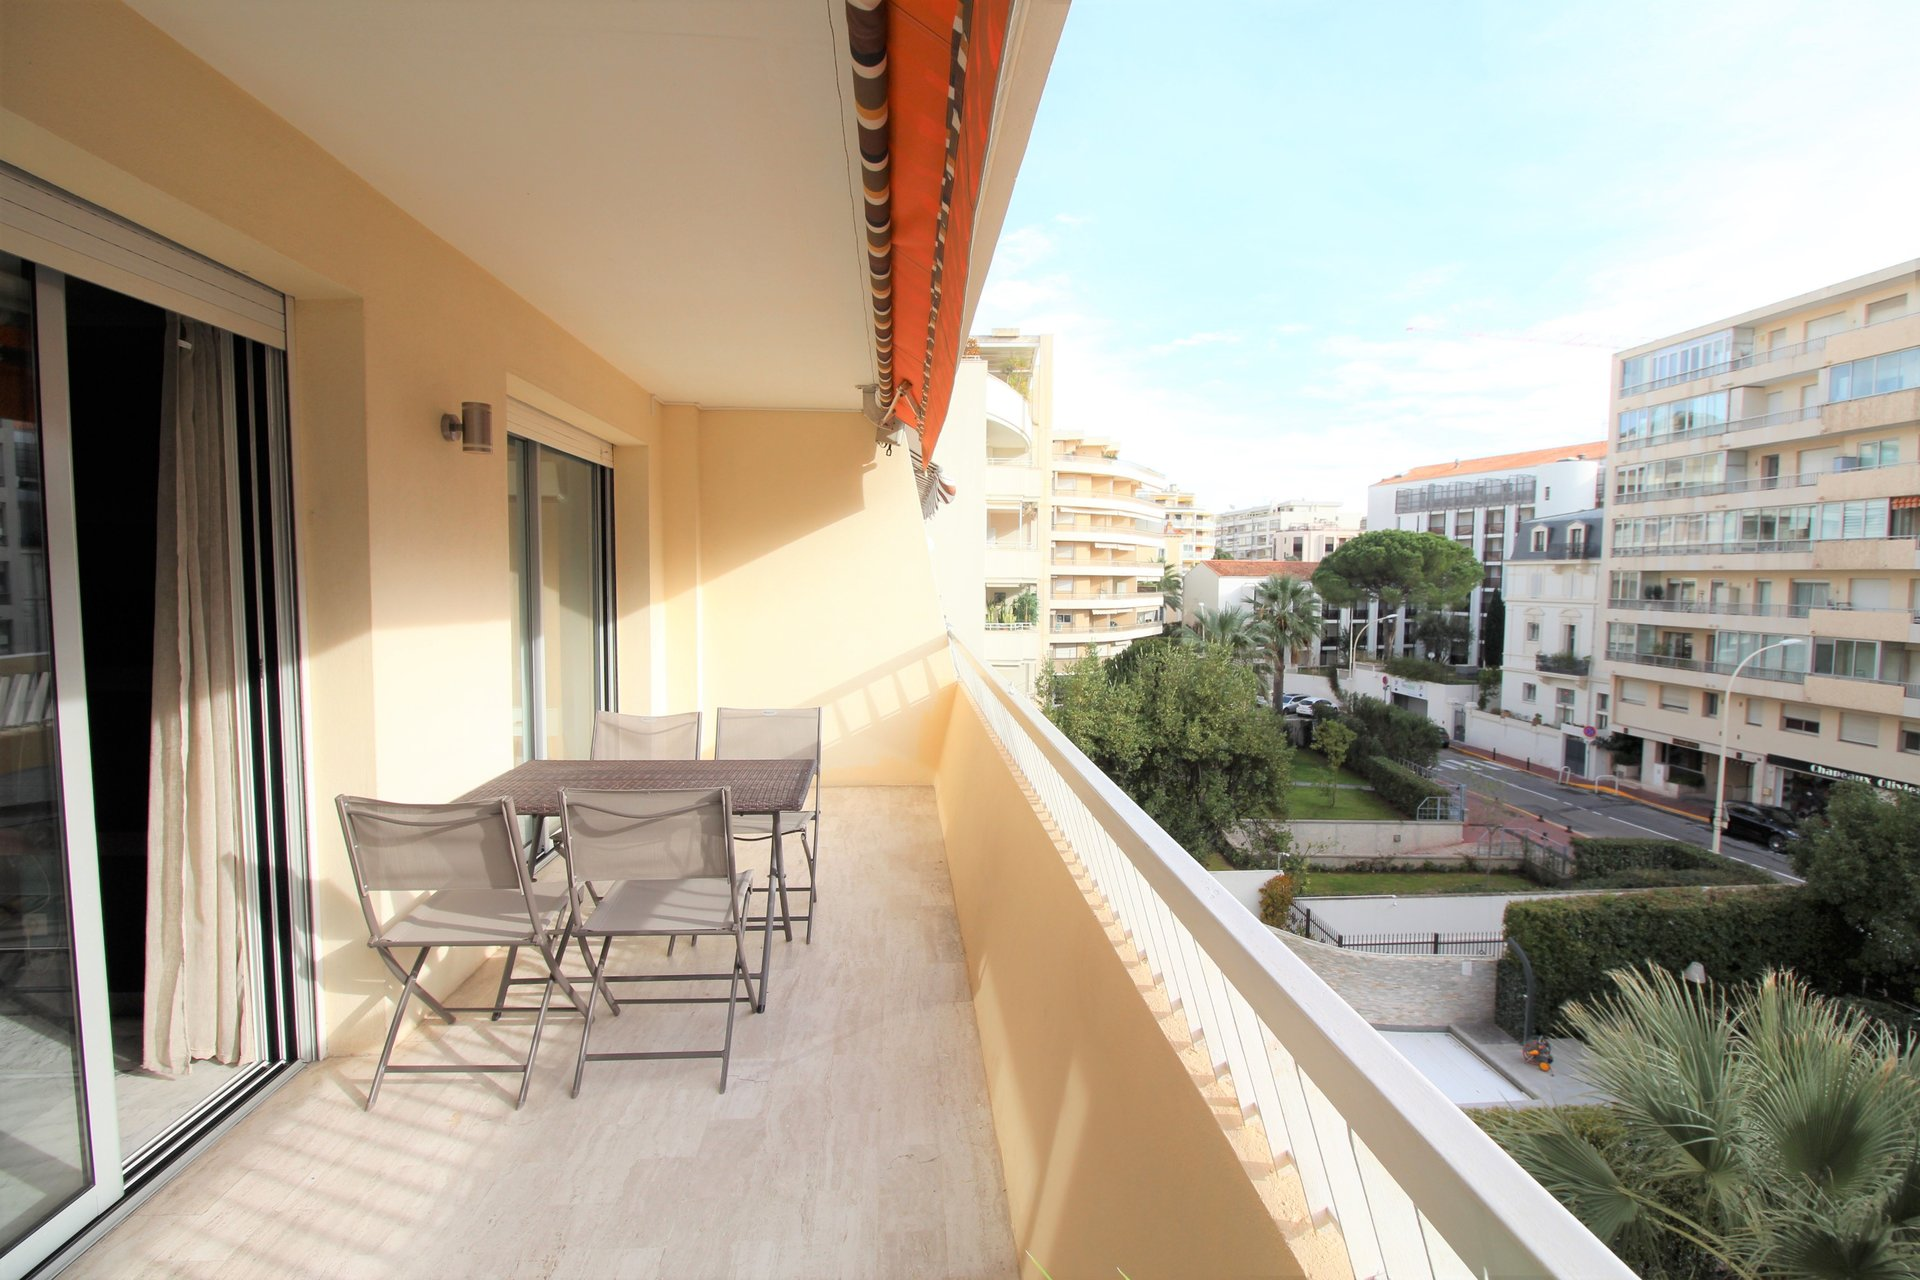 Cannes Banane- Rond Point Duboys d'Angers - 2P - Sud- Terrasse